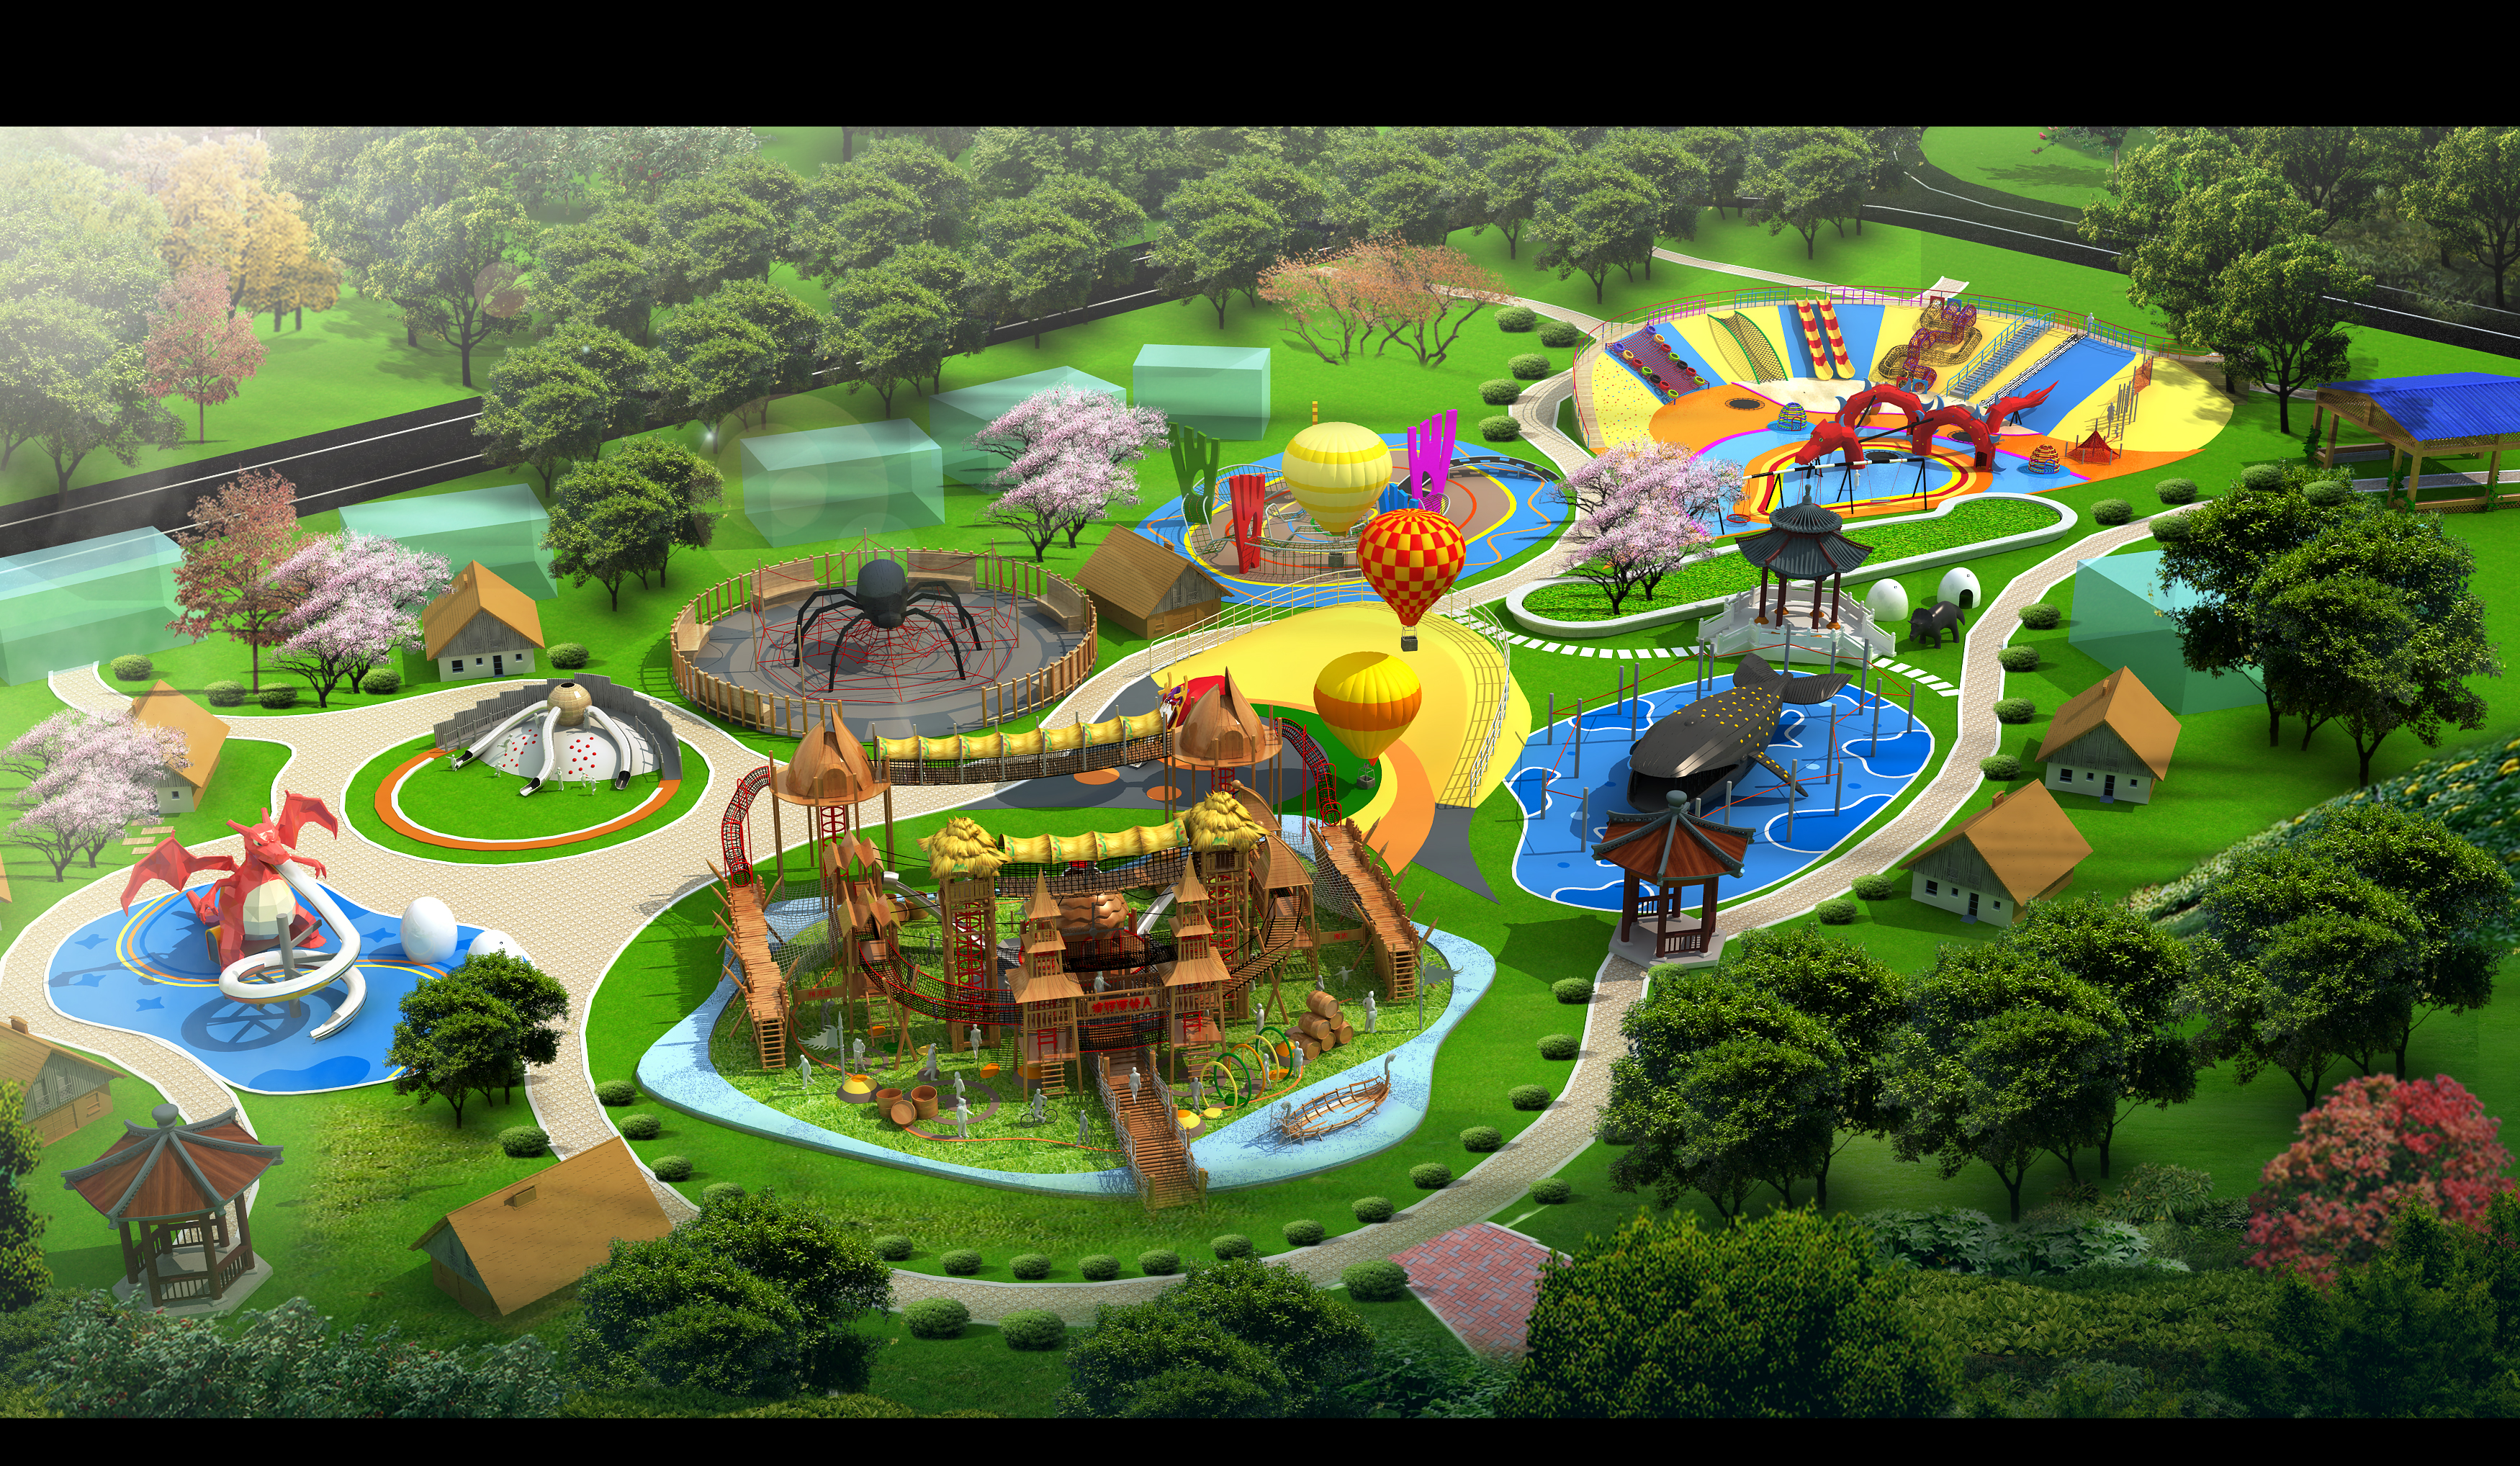 New amusement park design for yingshang, Anhui province